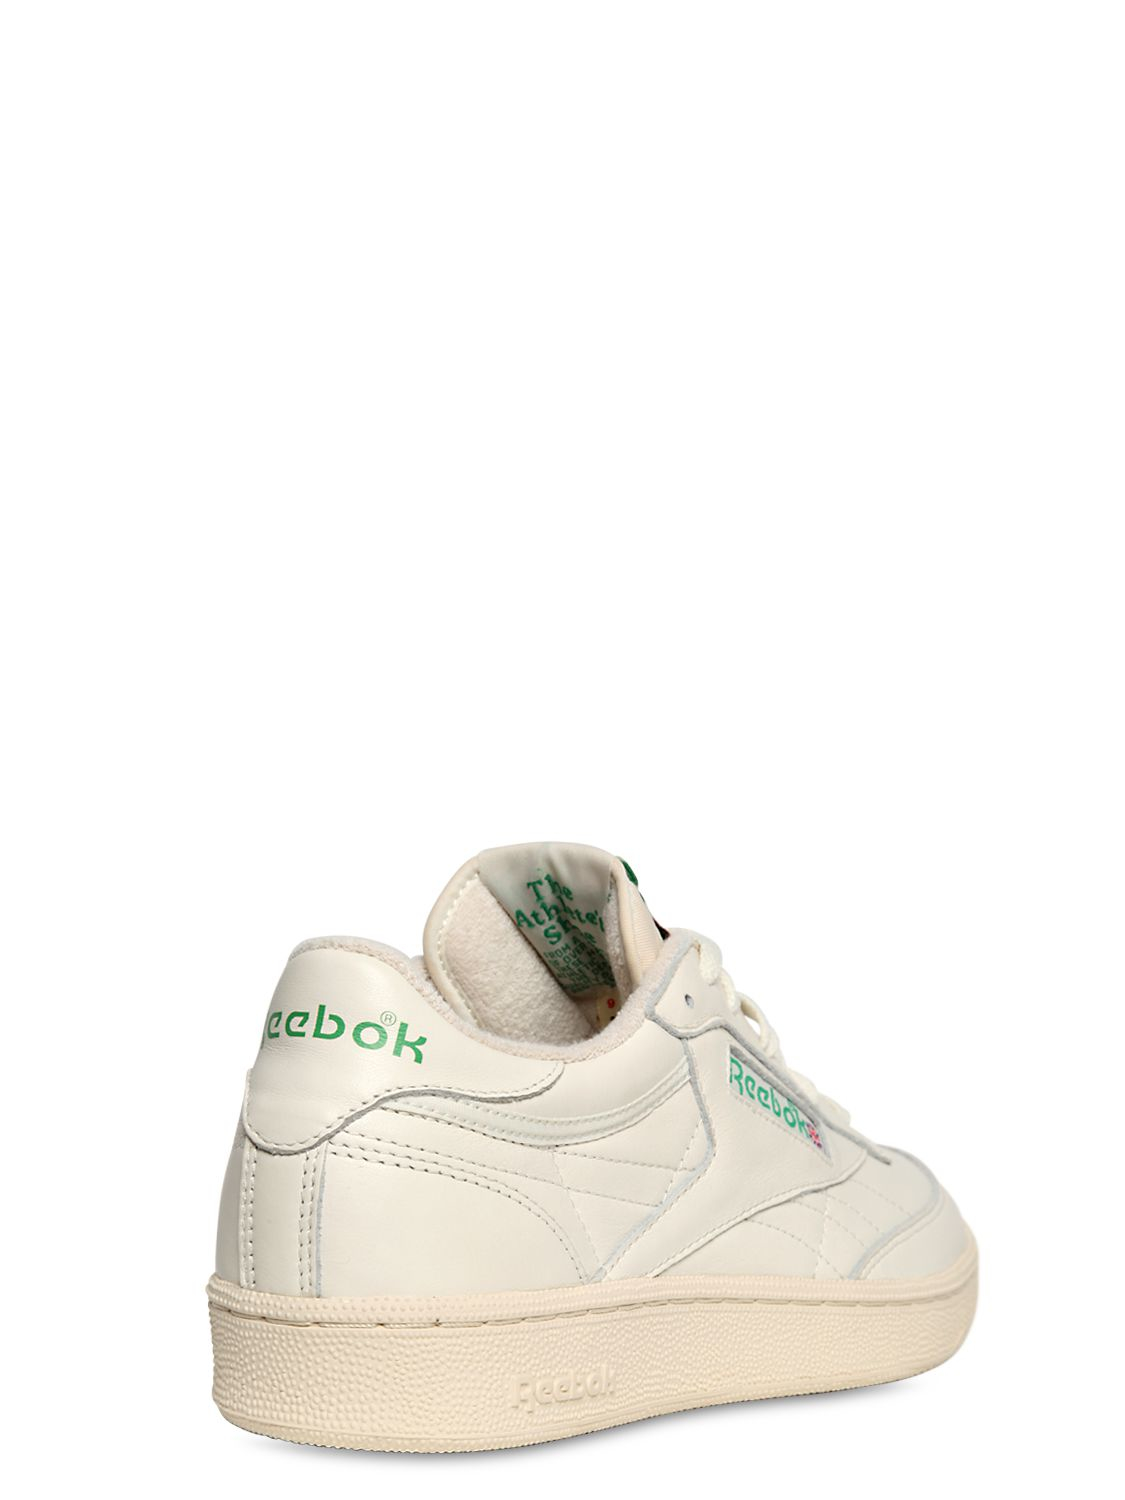 9a2f54cf17a2 Lyst - Reebok Club C 85 Vintage Leather Low-Top Sneakers in White for Men